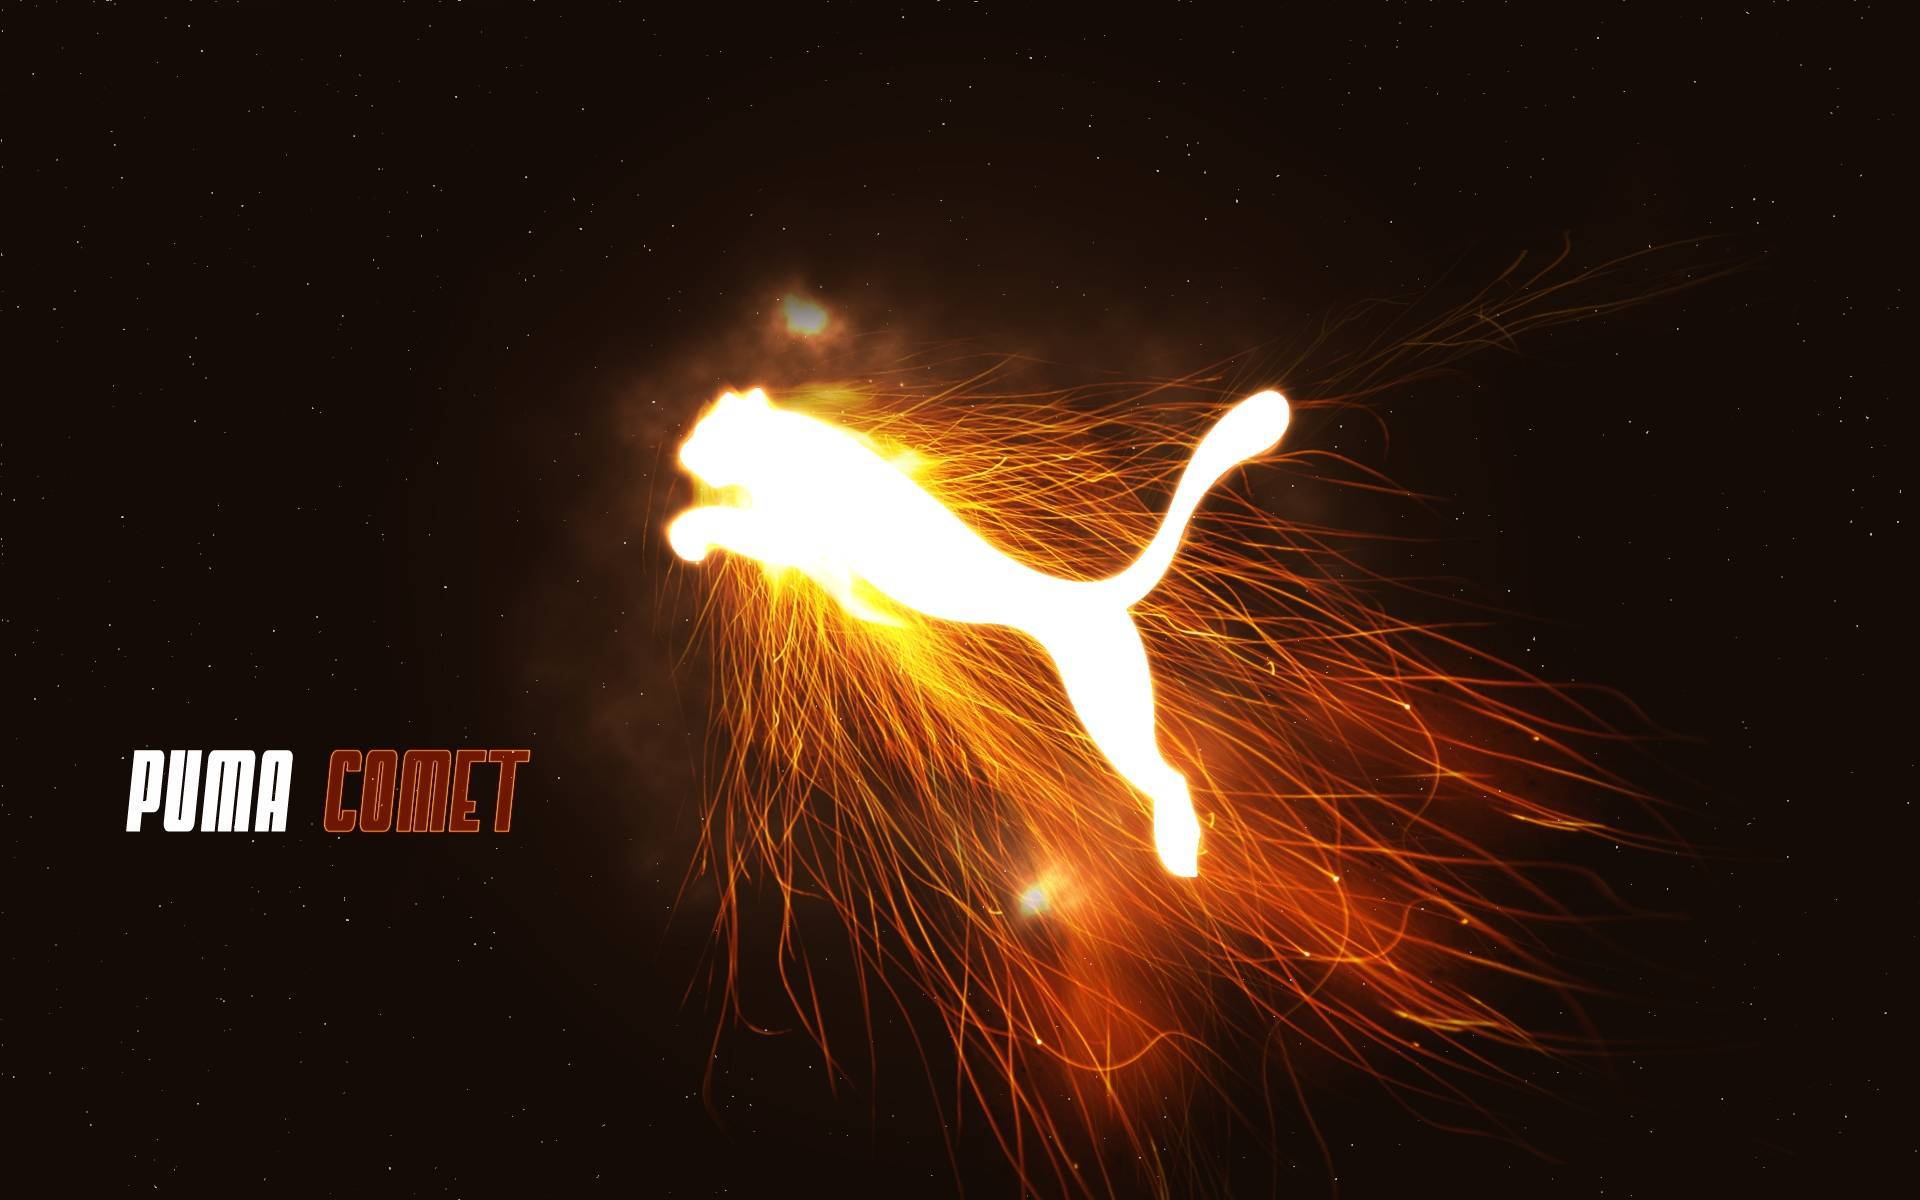 Puma comet logo wallpapers and images   wallpapers pictures photos 1920x1200